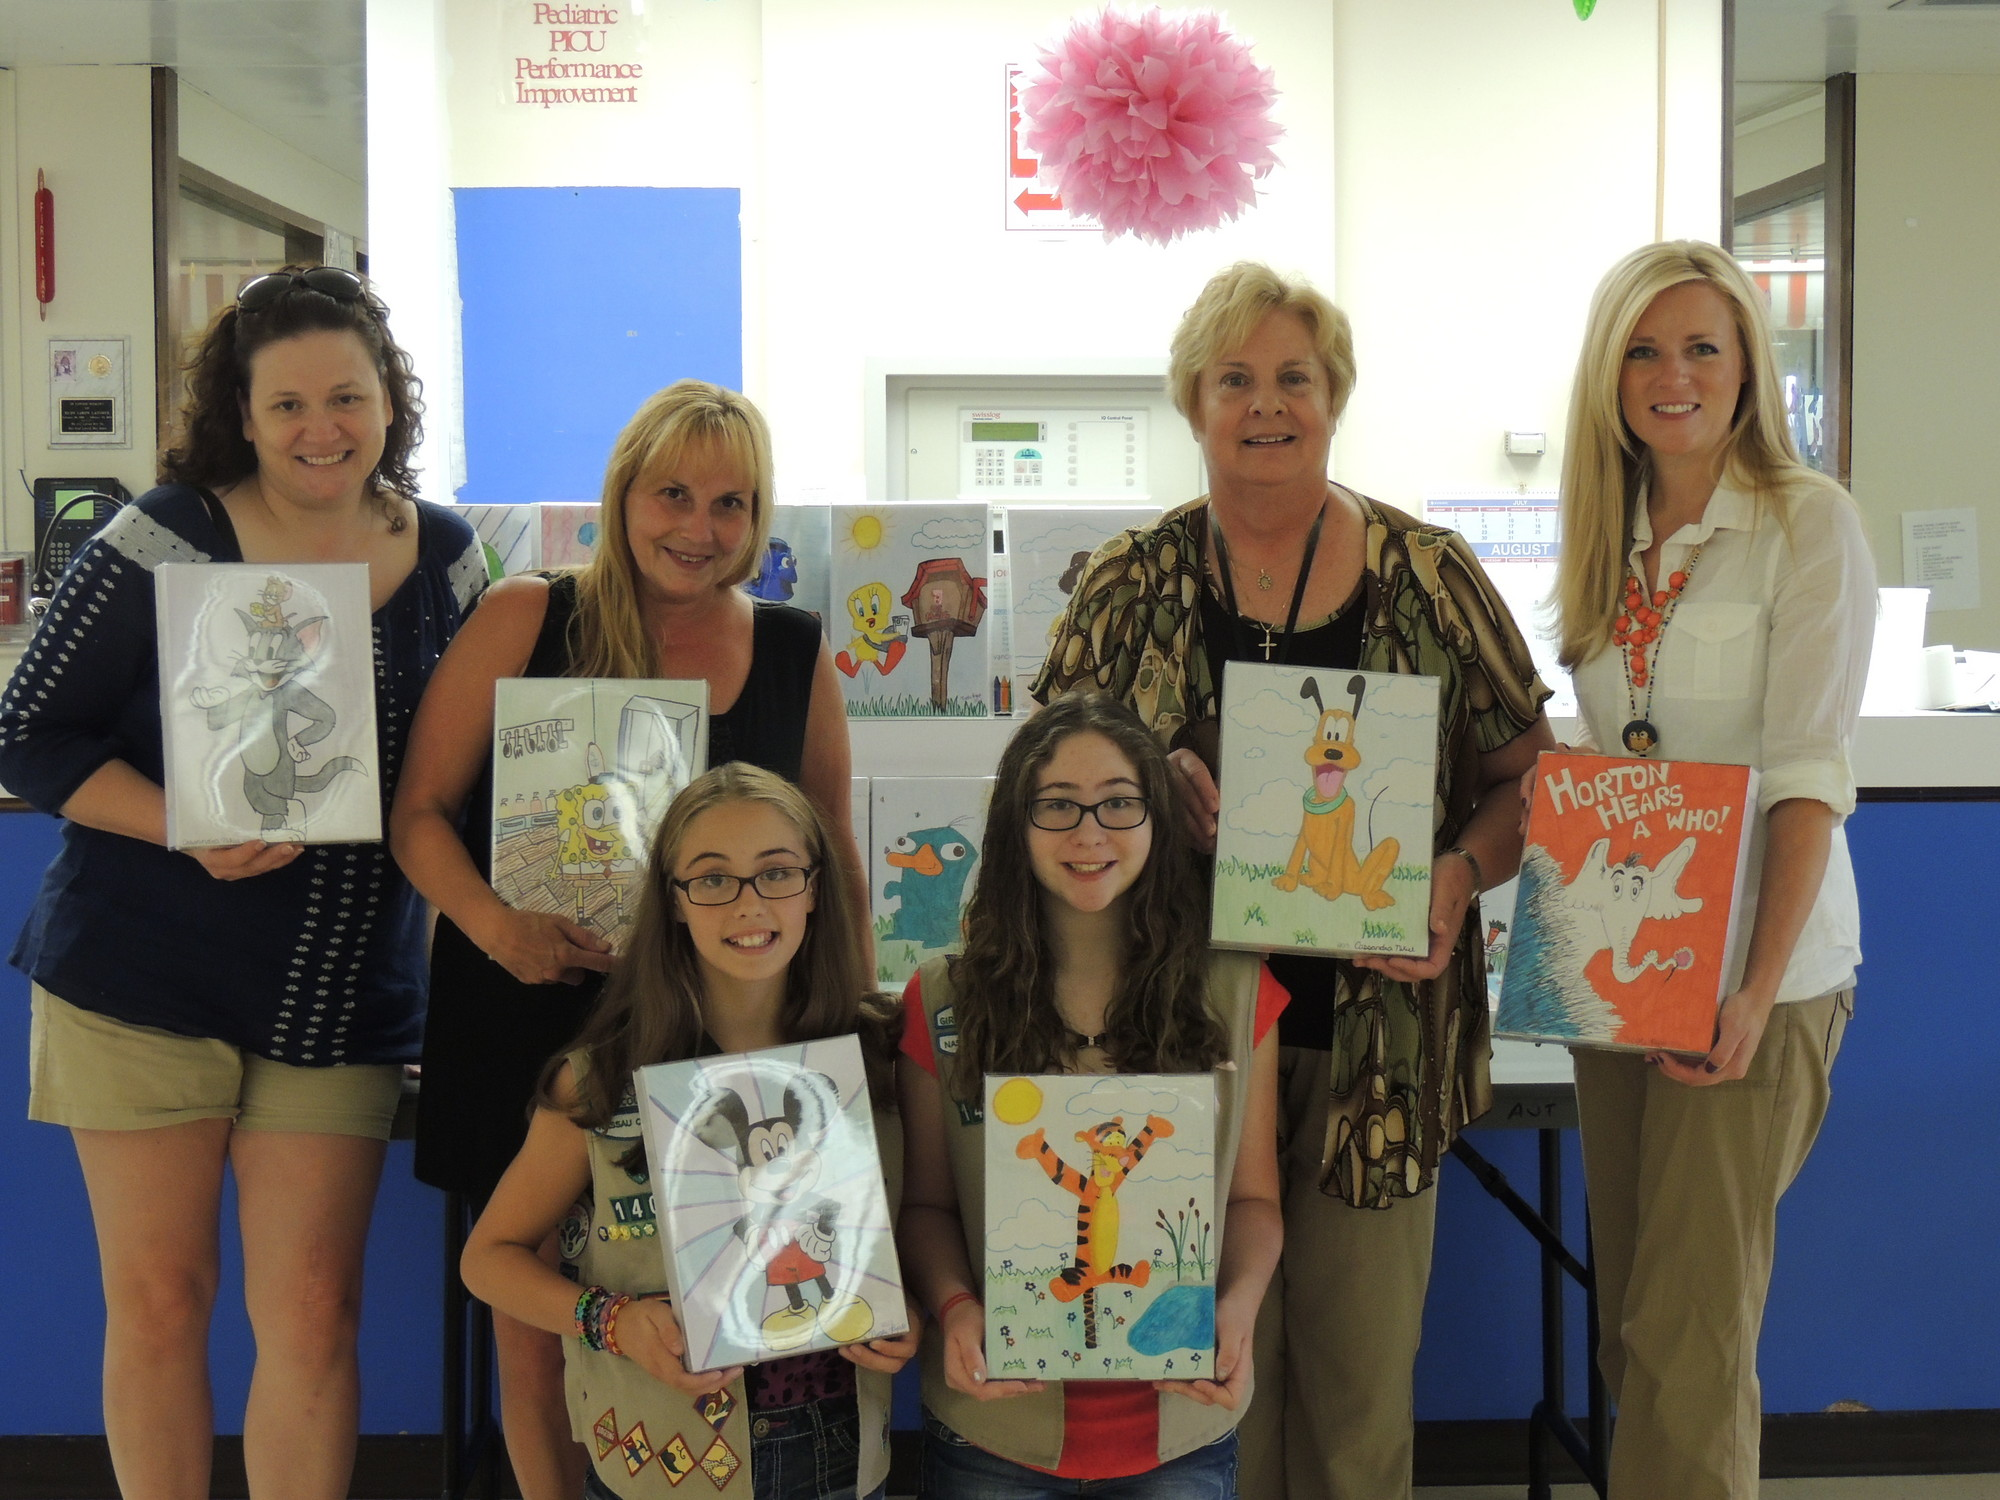 Nicole Pupo, 12, bottom left, with Cassandra Nikiel, of East Meadow Girl Scout Troop 1404, spent their summer making colorful drawings that will be hung in the pediatric ward at the Nassau University Medical Center. Behind them, from left, are troop leaders Jerri May and Tracy Pupo, NUMC pediatric nurse manager Sue Novelli and activity specialist Heather Spanfelner.